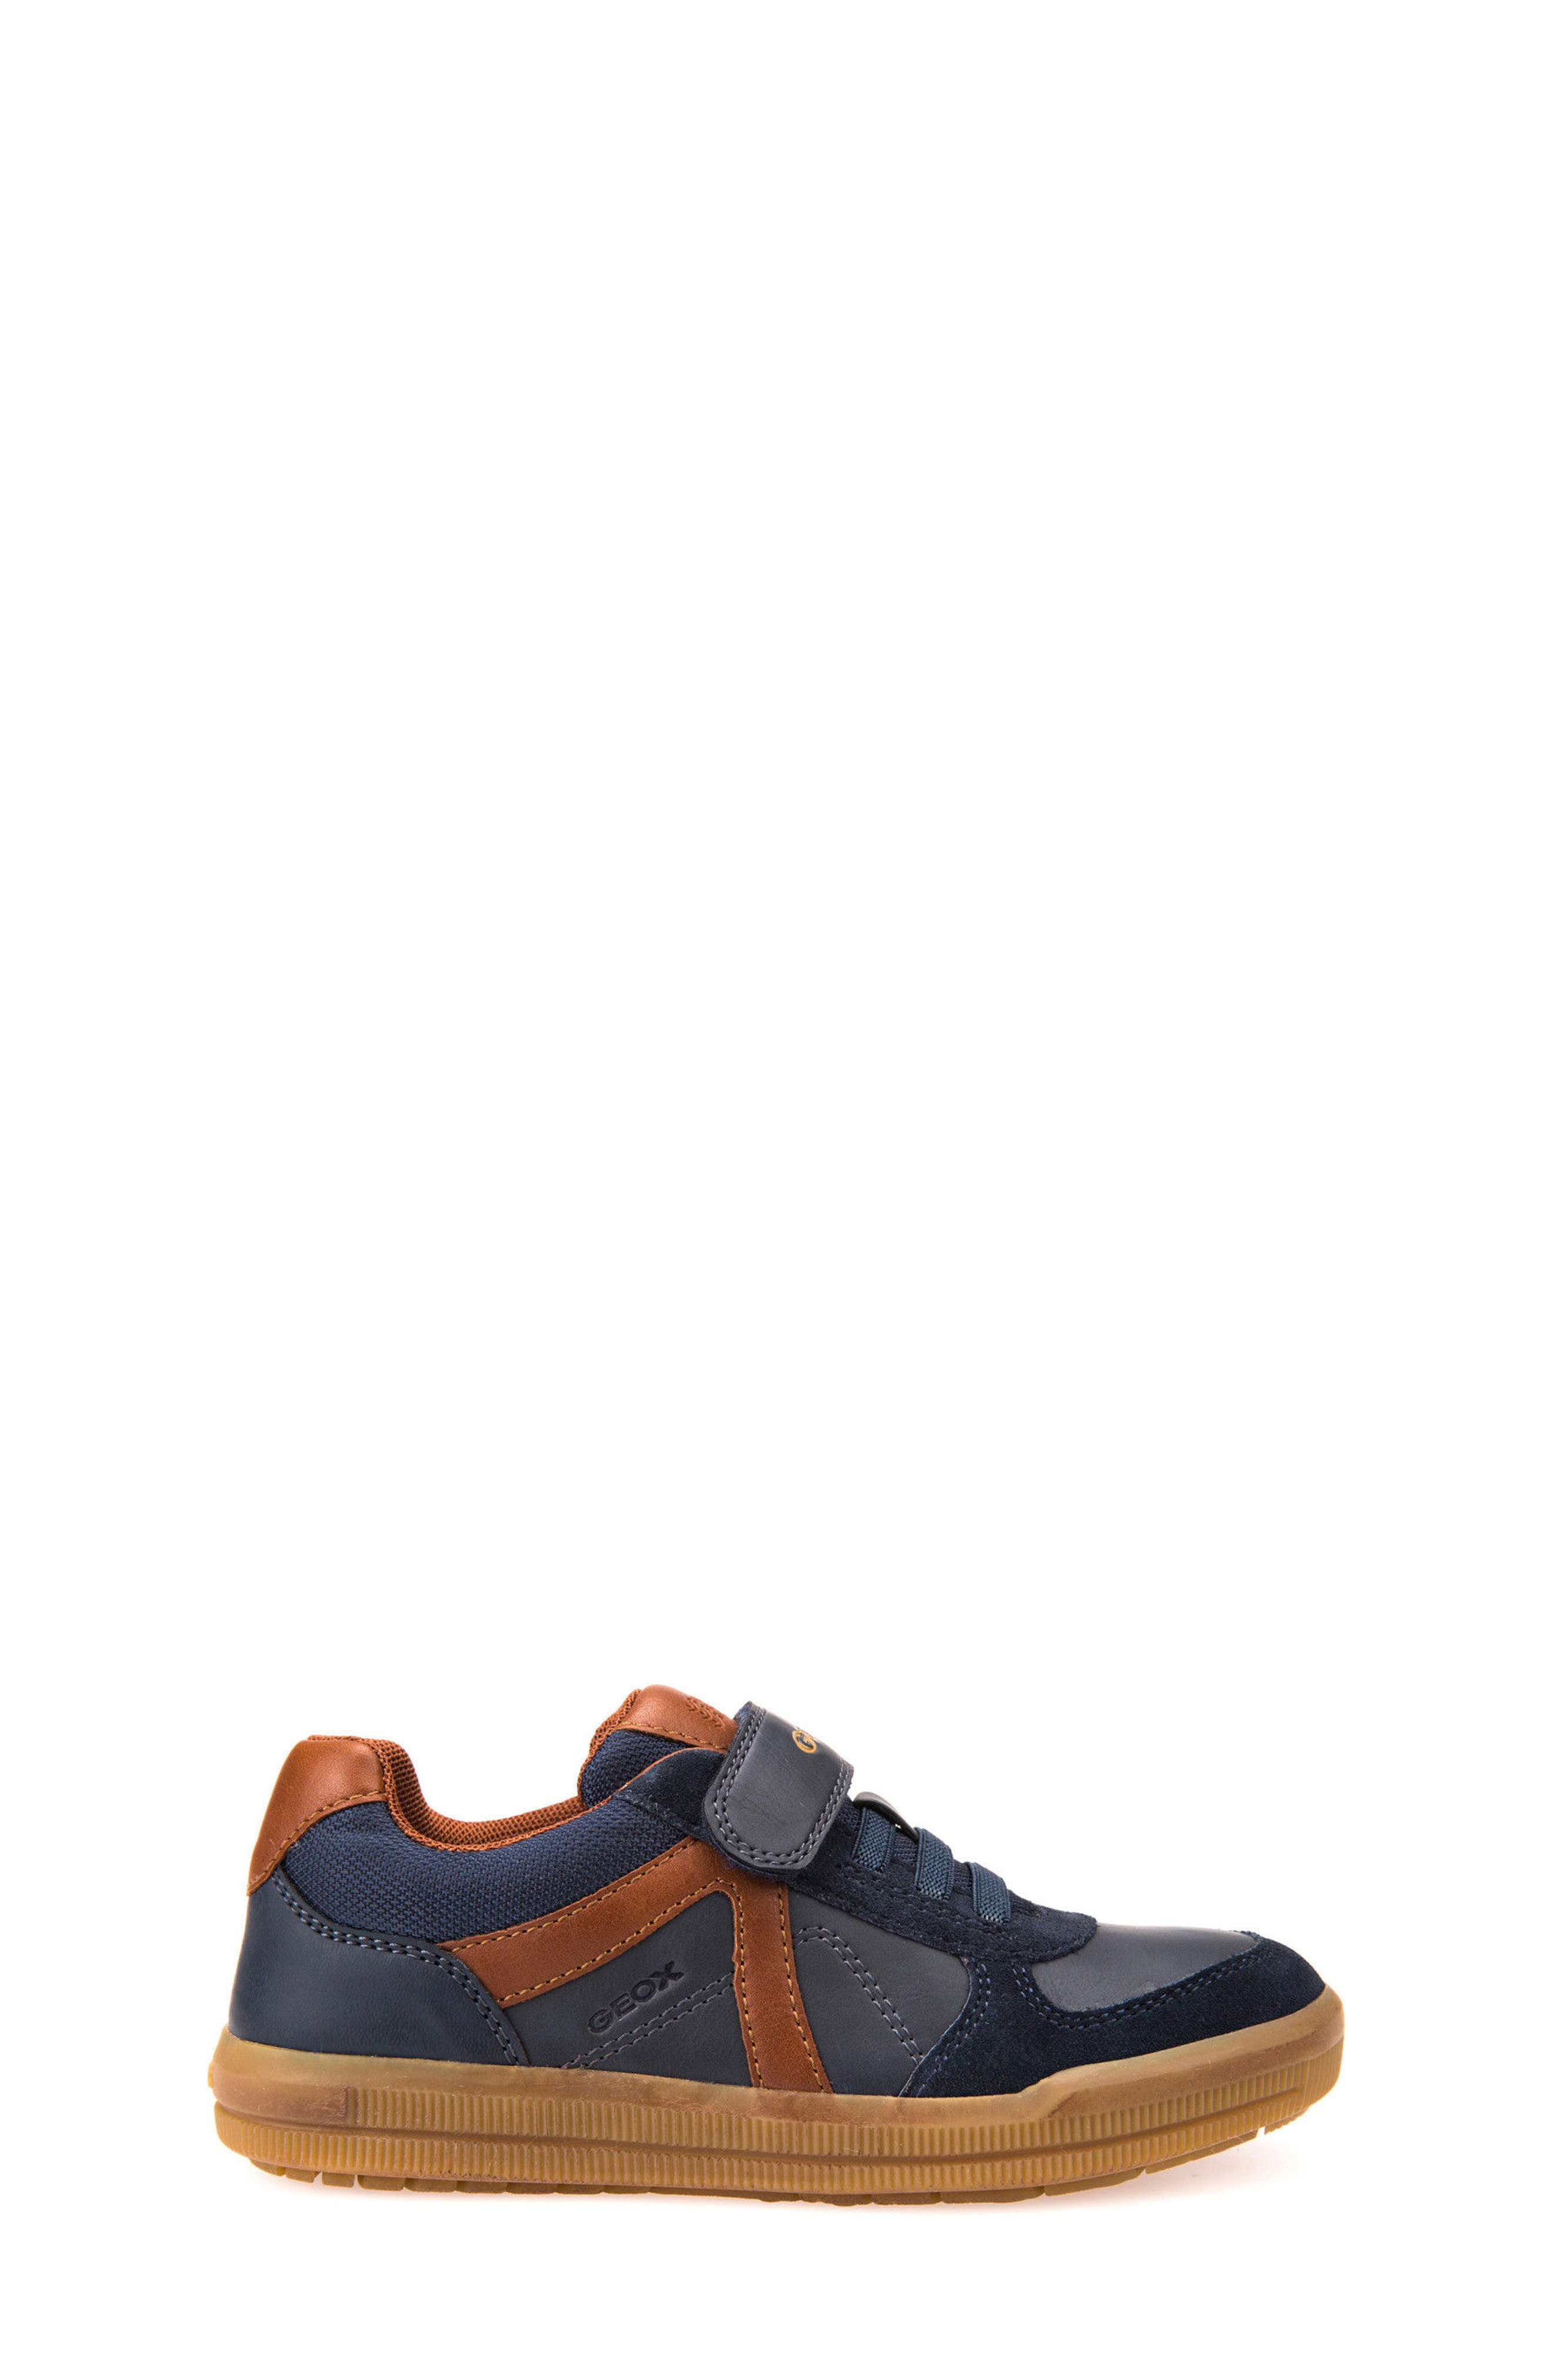 Arzach Low Top Sneaker,                             Alternate thumbnail 3, color,                             Navy/ Brown